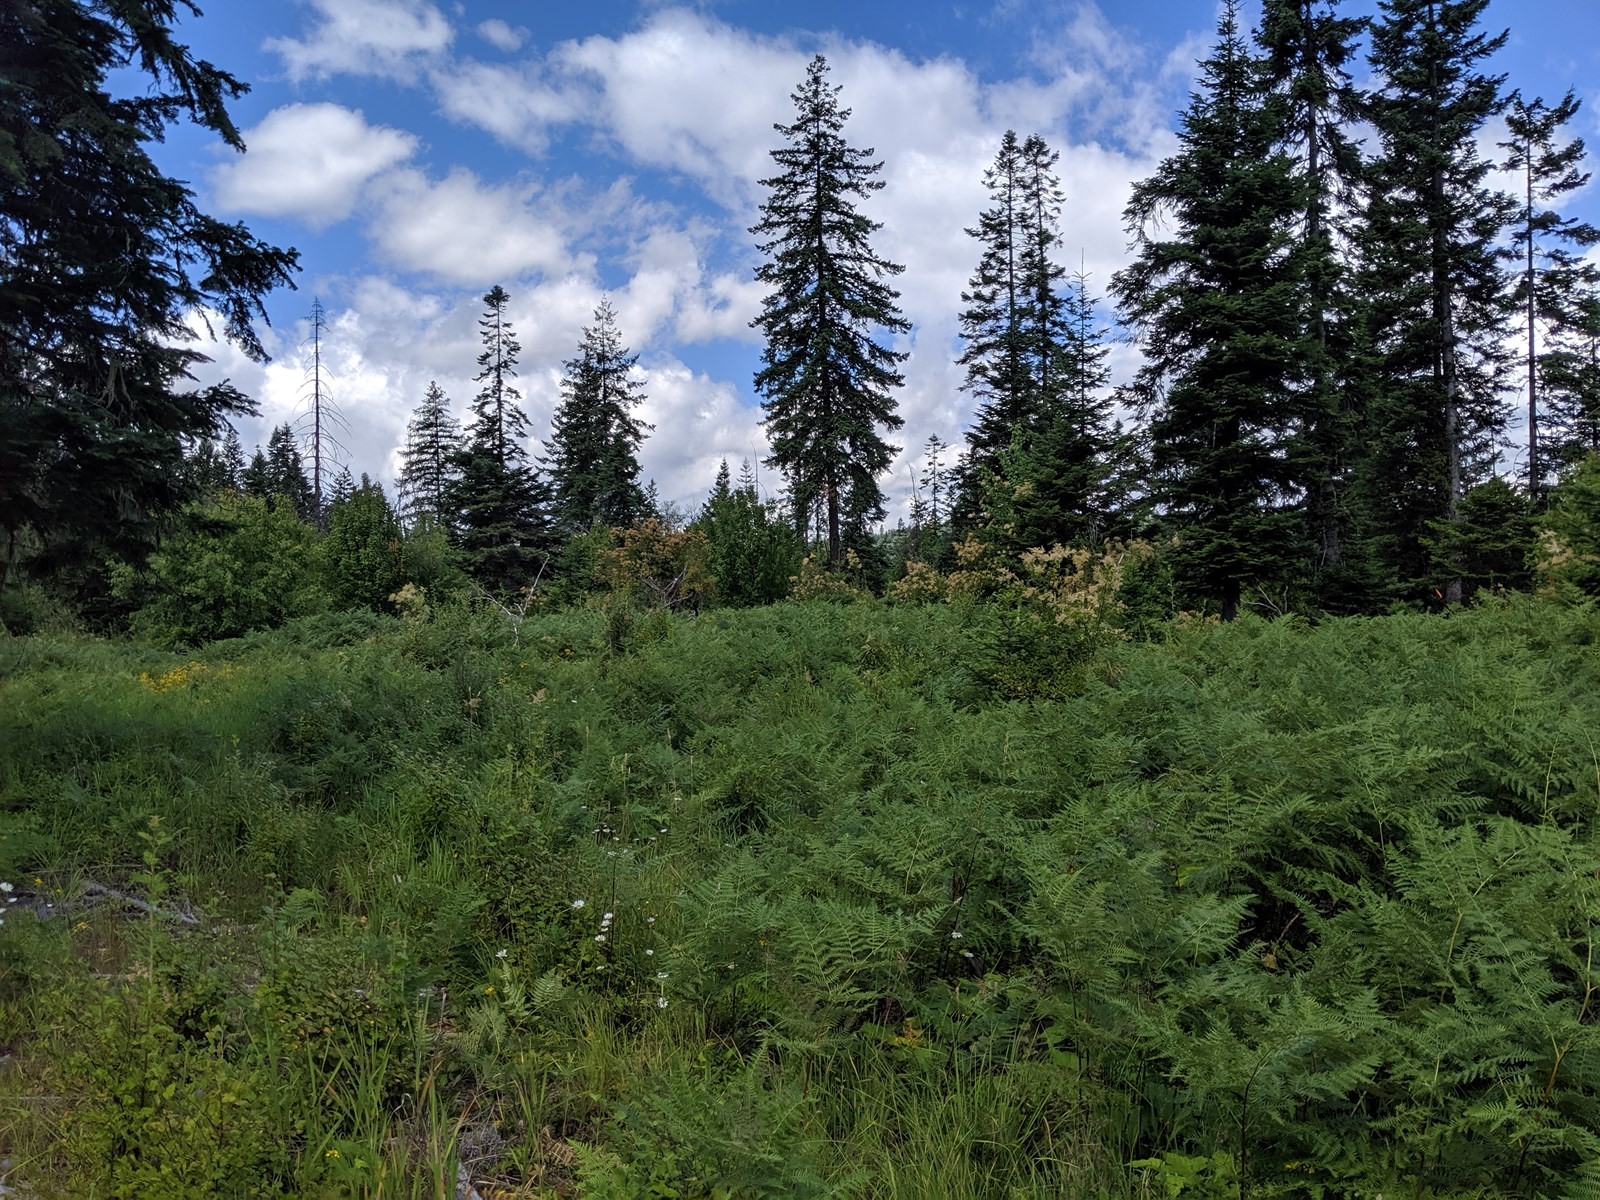 Mountian building/recrational lot for sale Orofino, Idaho